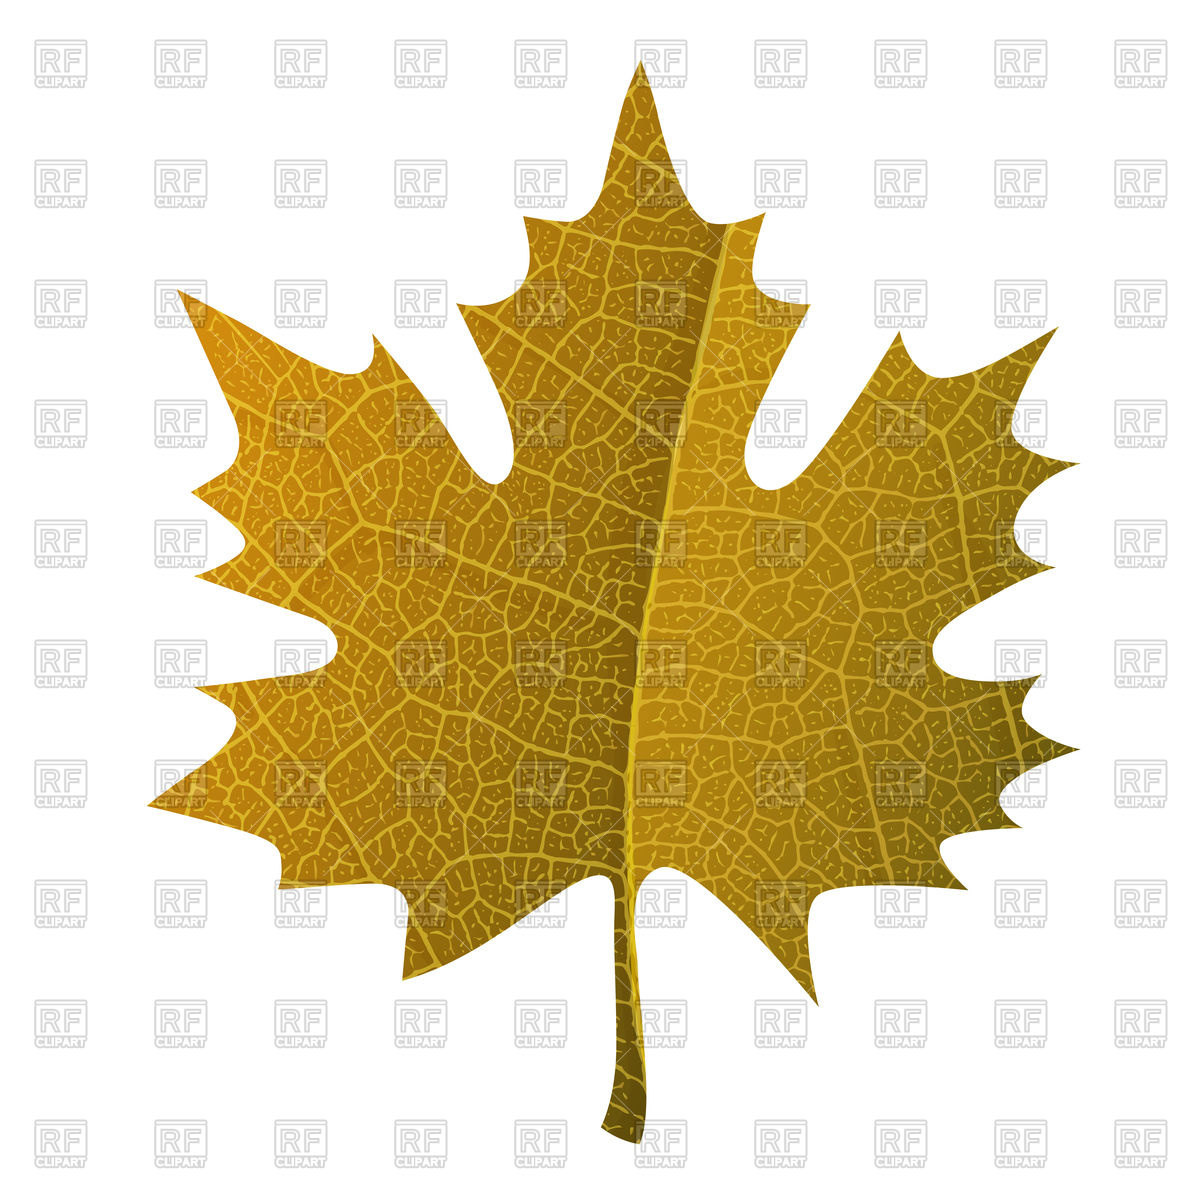 1200x1200 Orange Maple Leaf Vector Image Vector Artwork Of Signs, Symbols